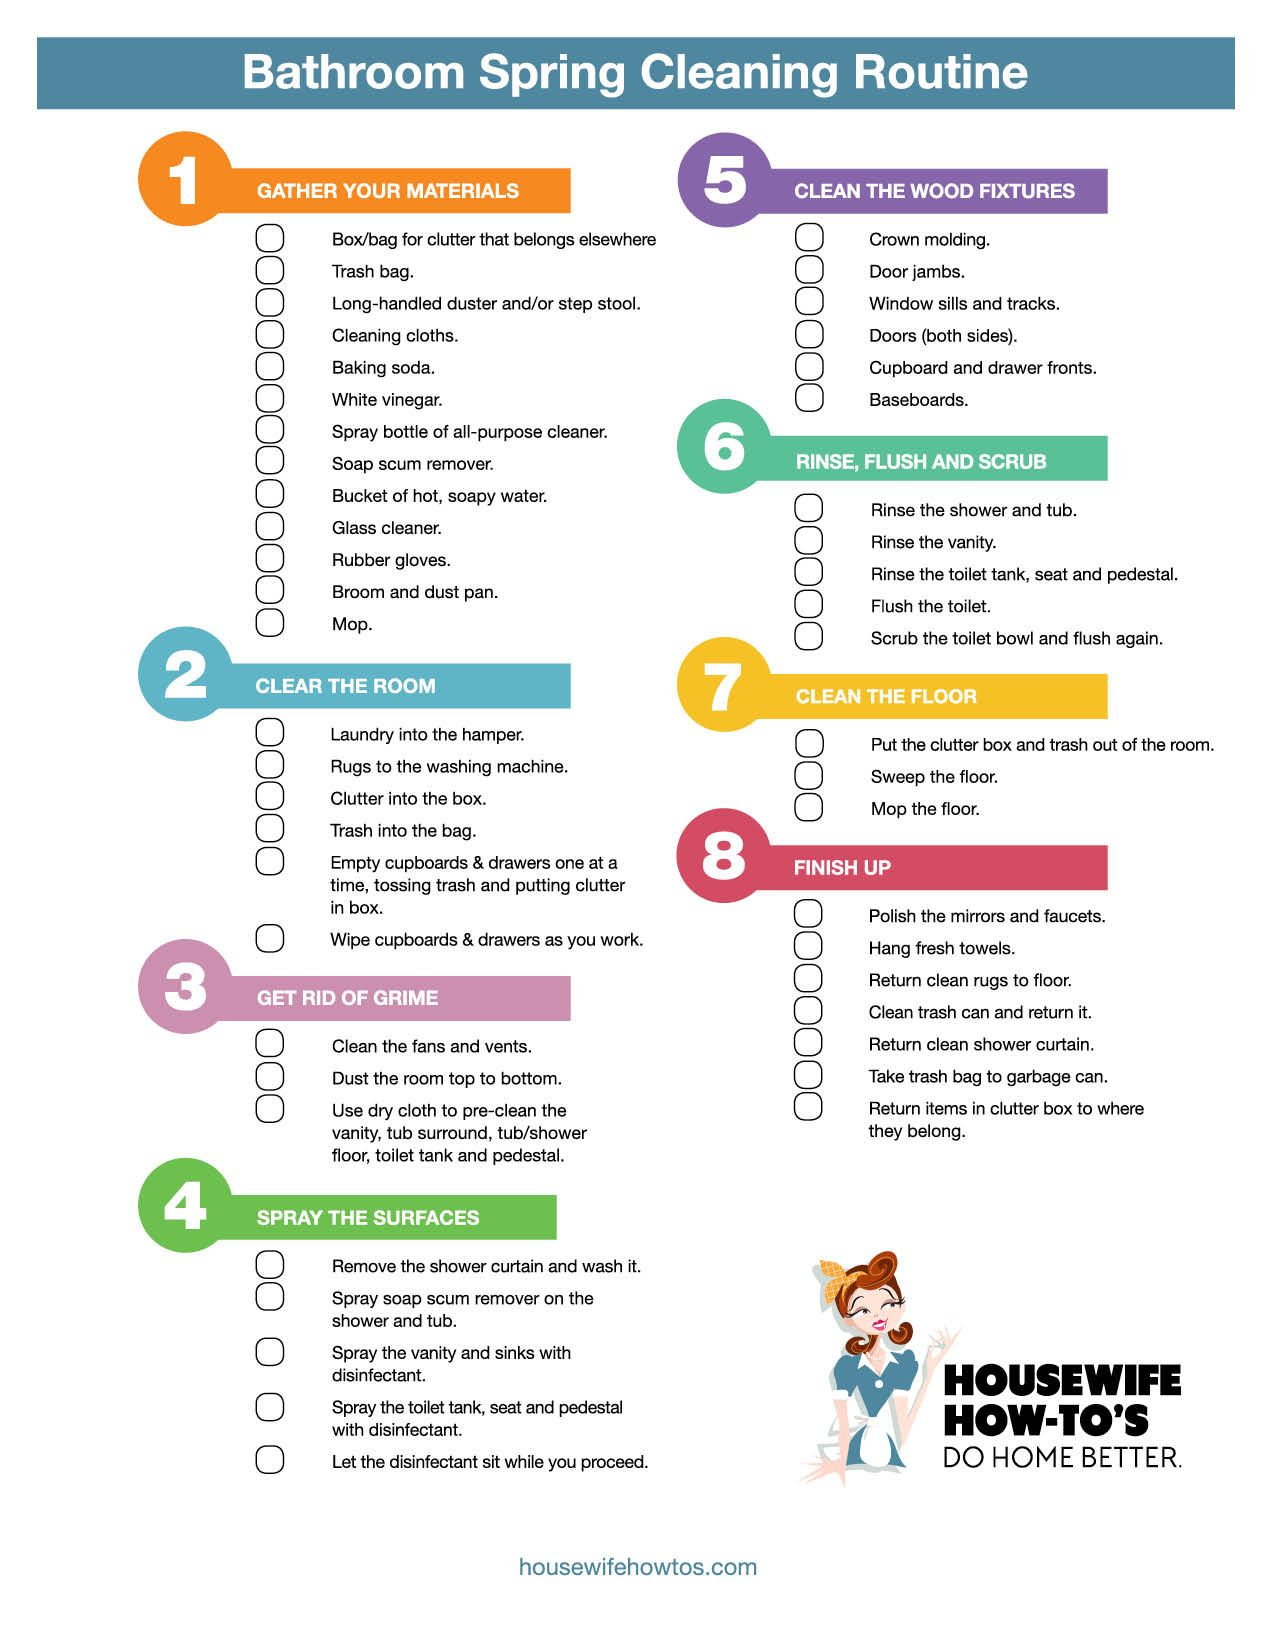 Printable Cleaning Checklists Via Housewifehowtos Spring Cleaning Bathroom Cleaning Checklist Spring Cleaning Checklist